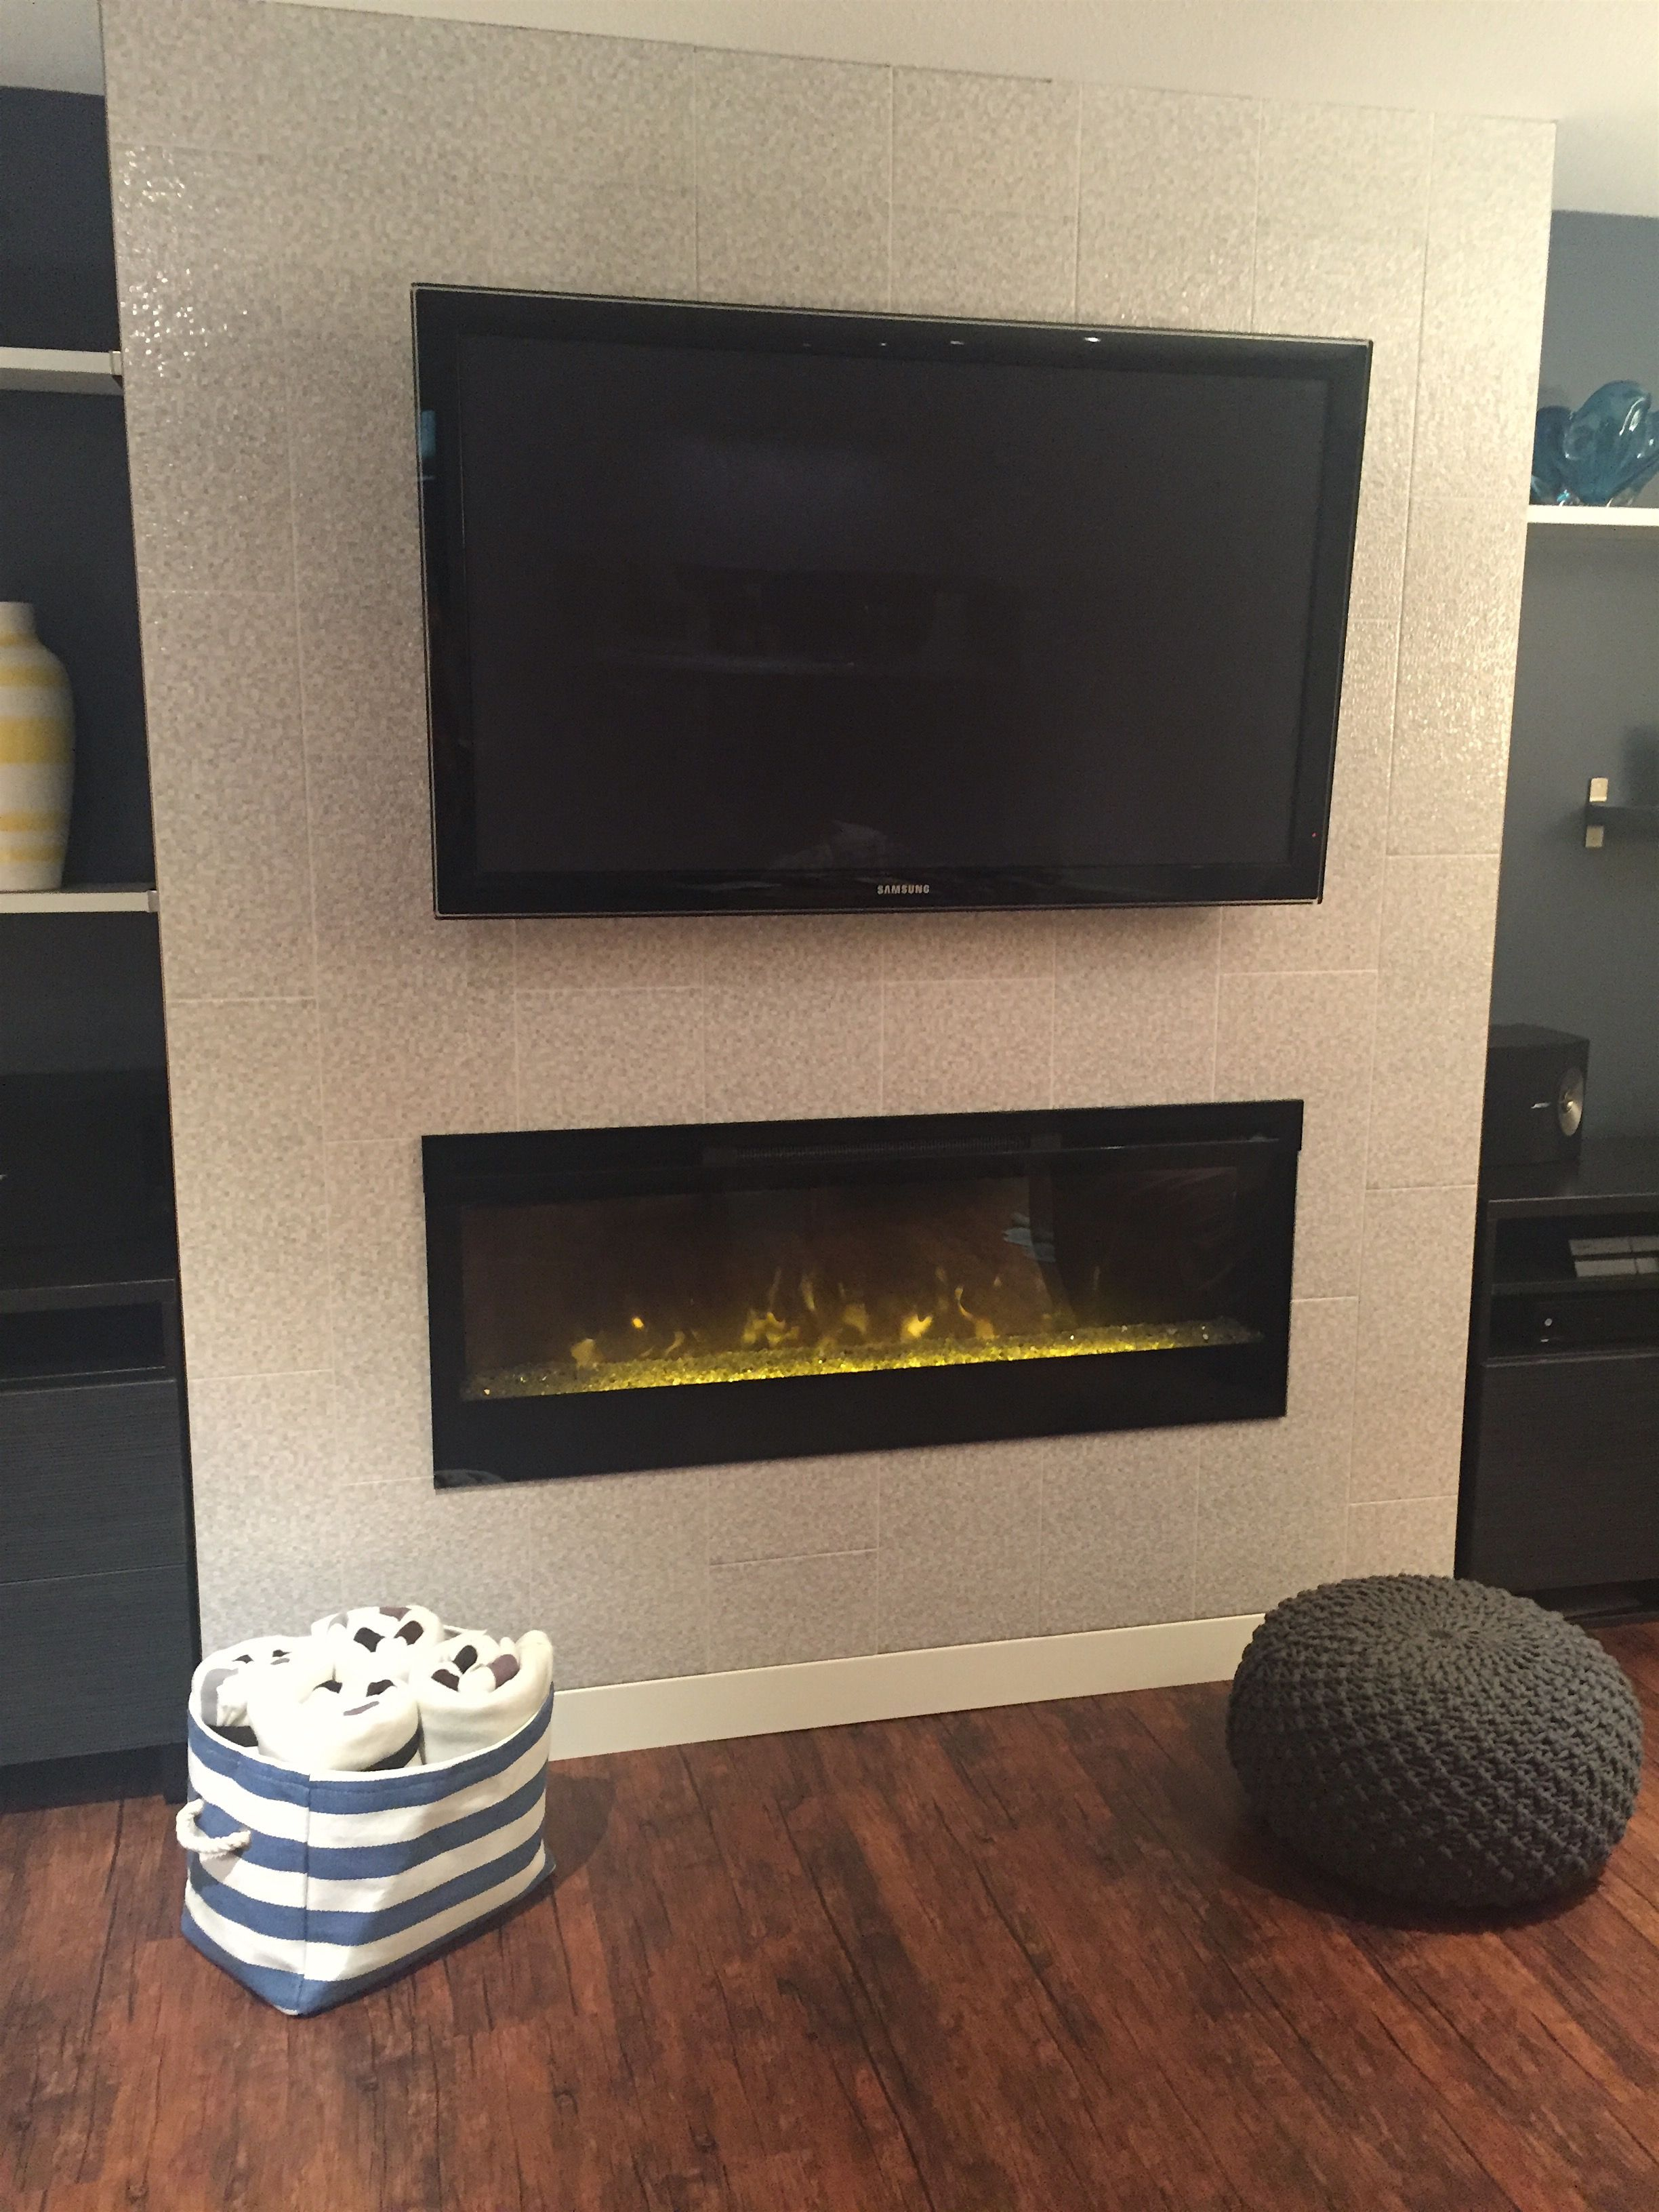 Fireplace is a inch dimple about inches on each side of the